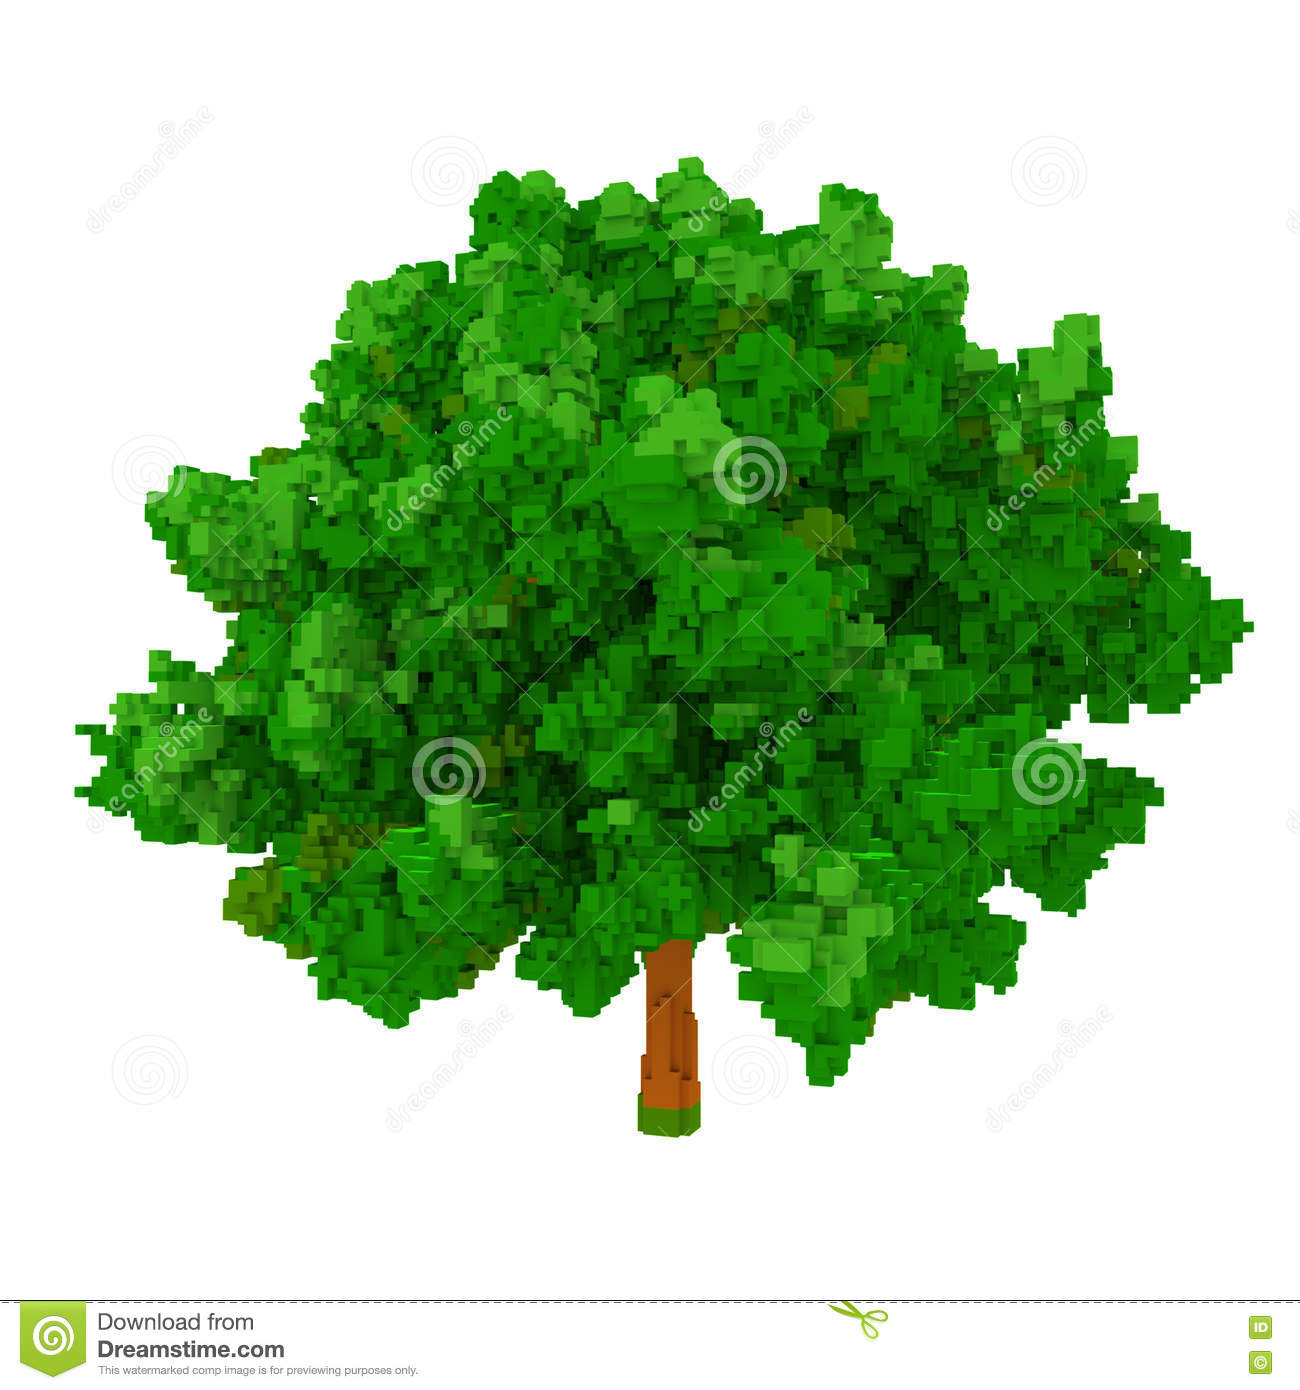 More similar stock images of 3d landscape with fall tree - 3d Voxel Tree Royalty Free Stock Photos